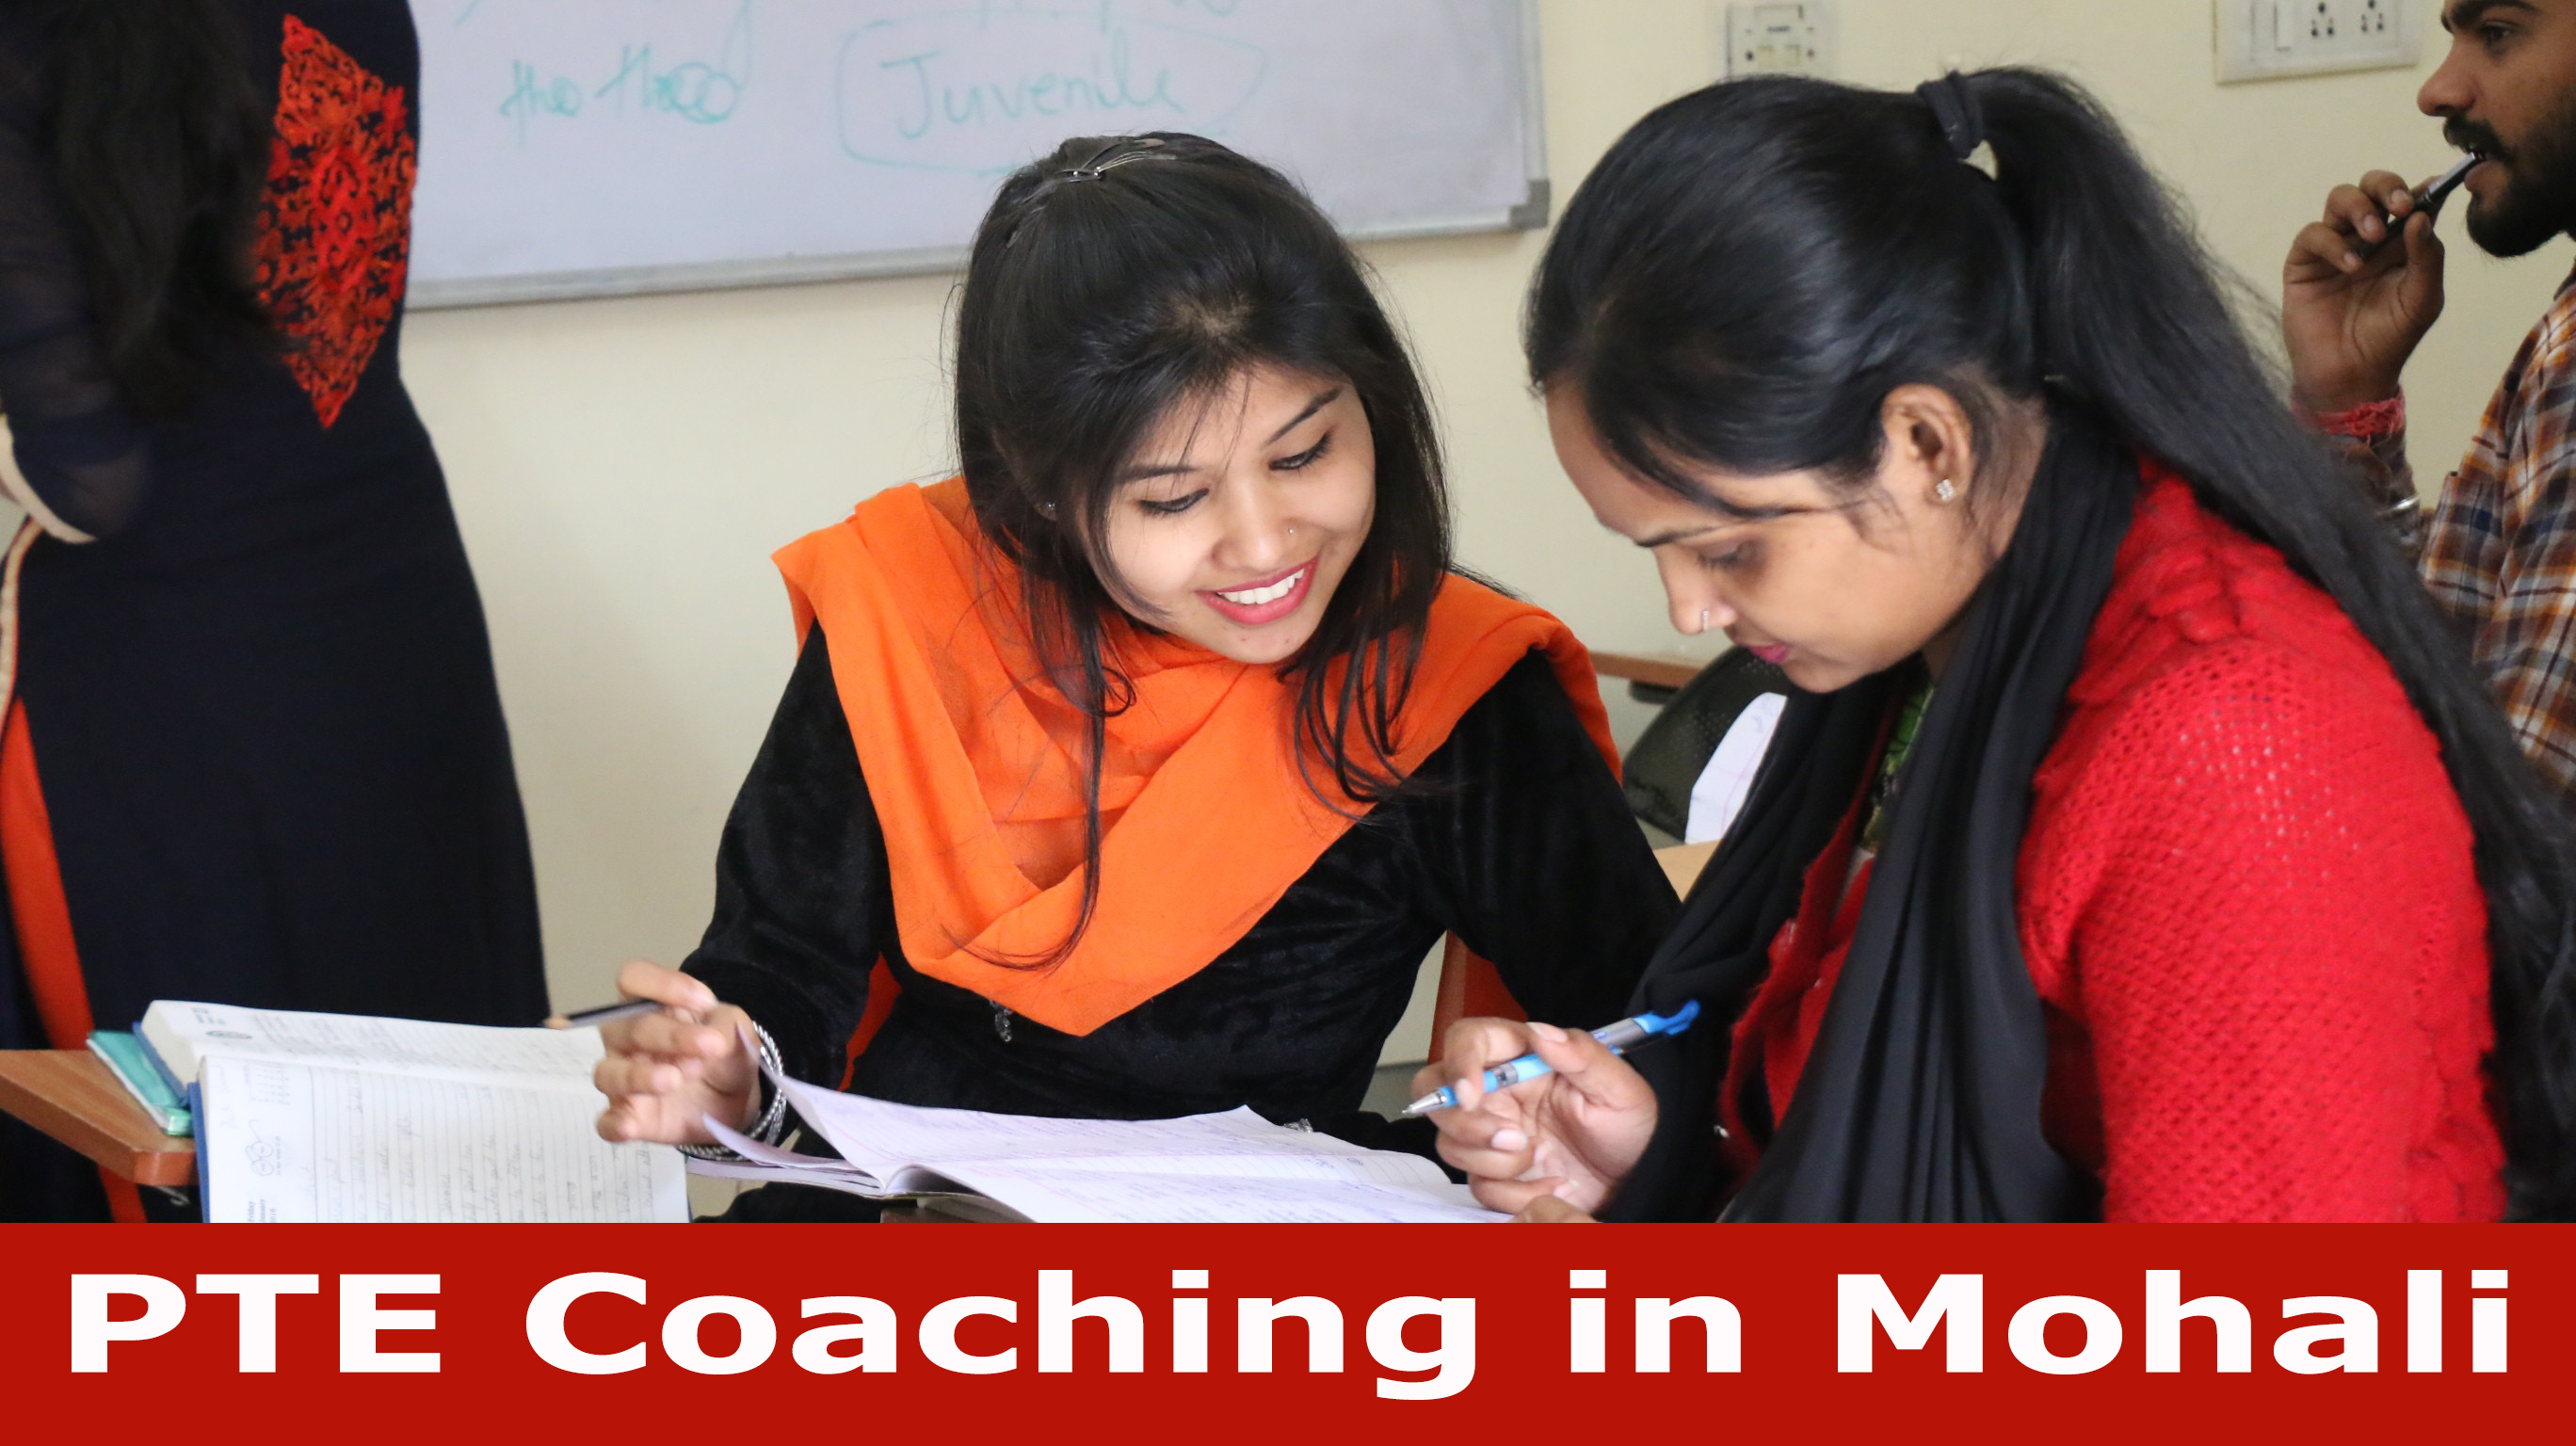 PTE Coaching in Mohali